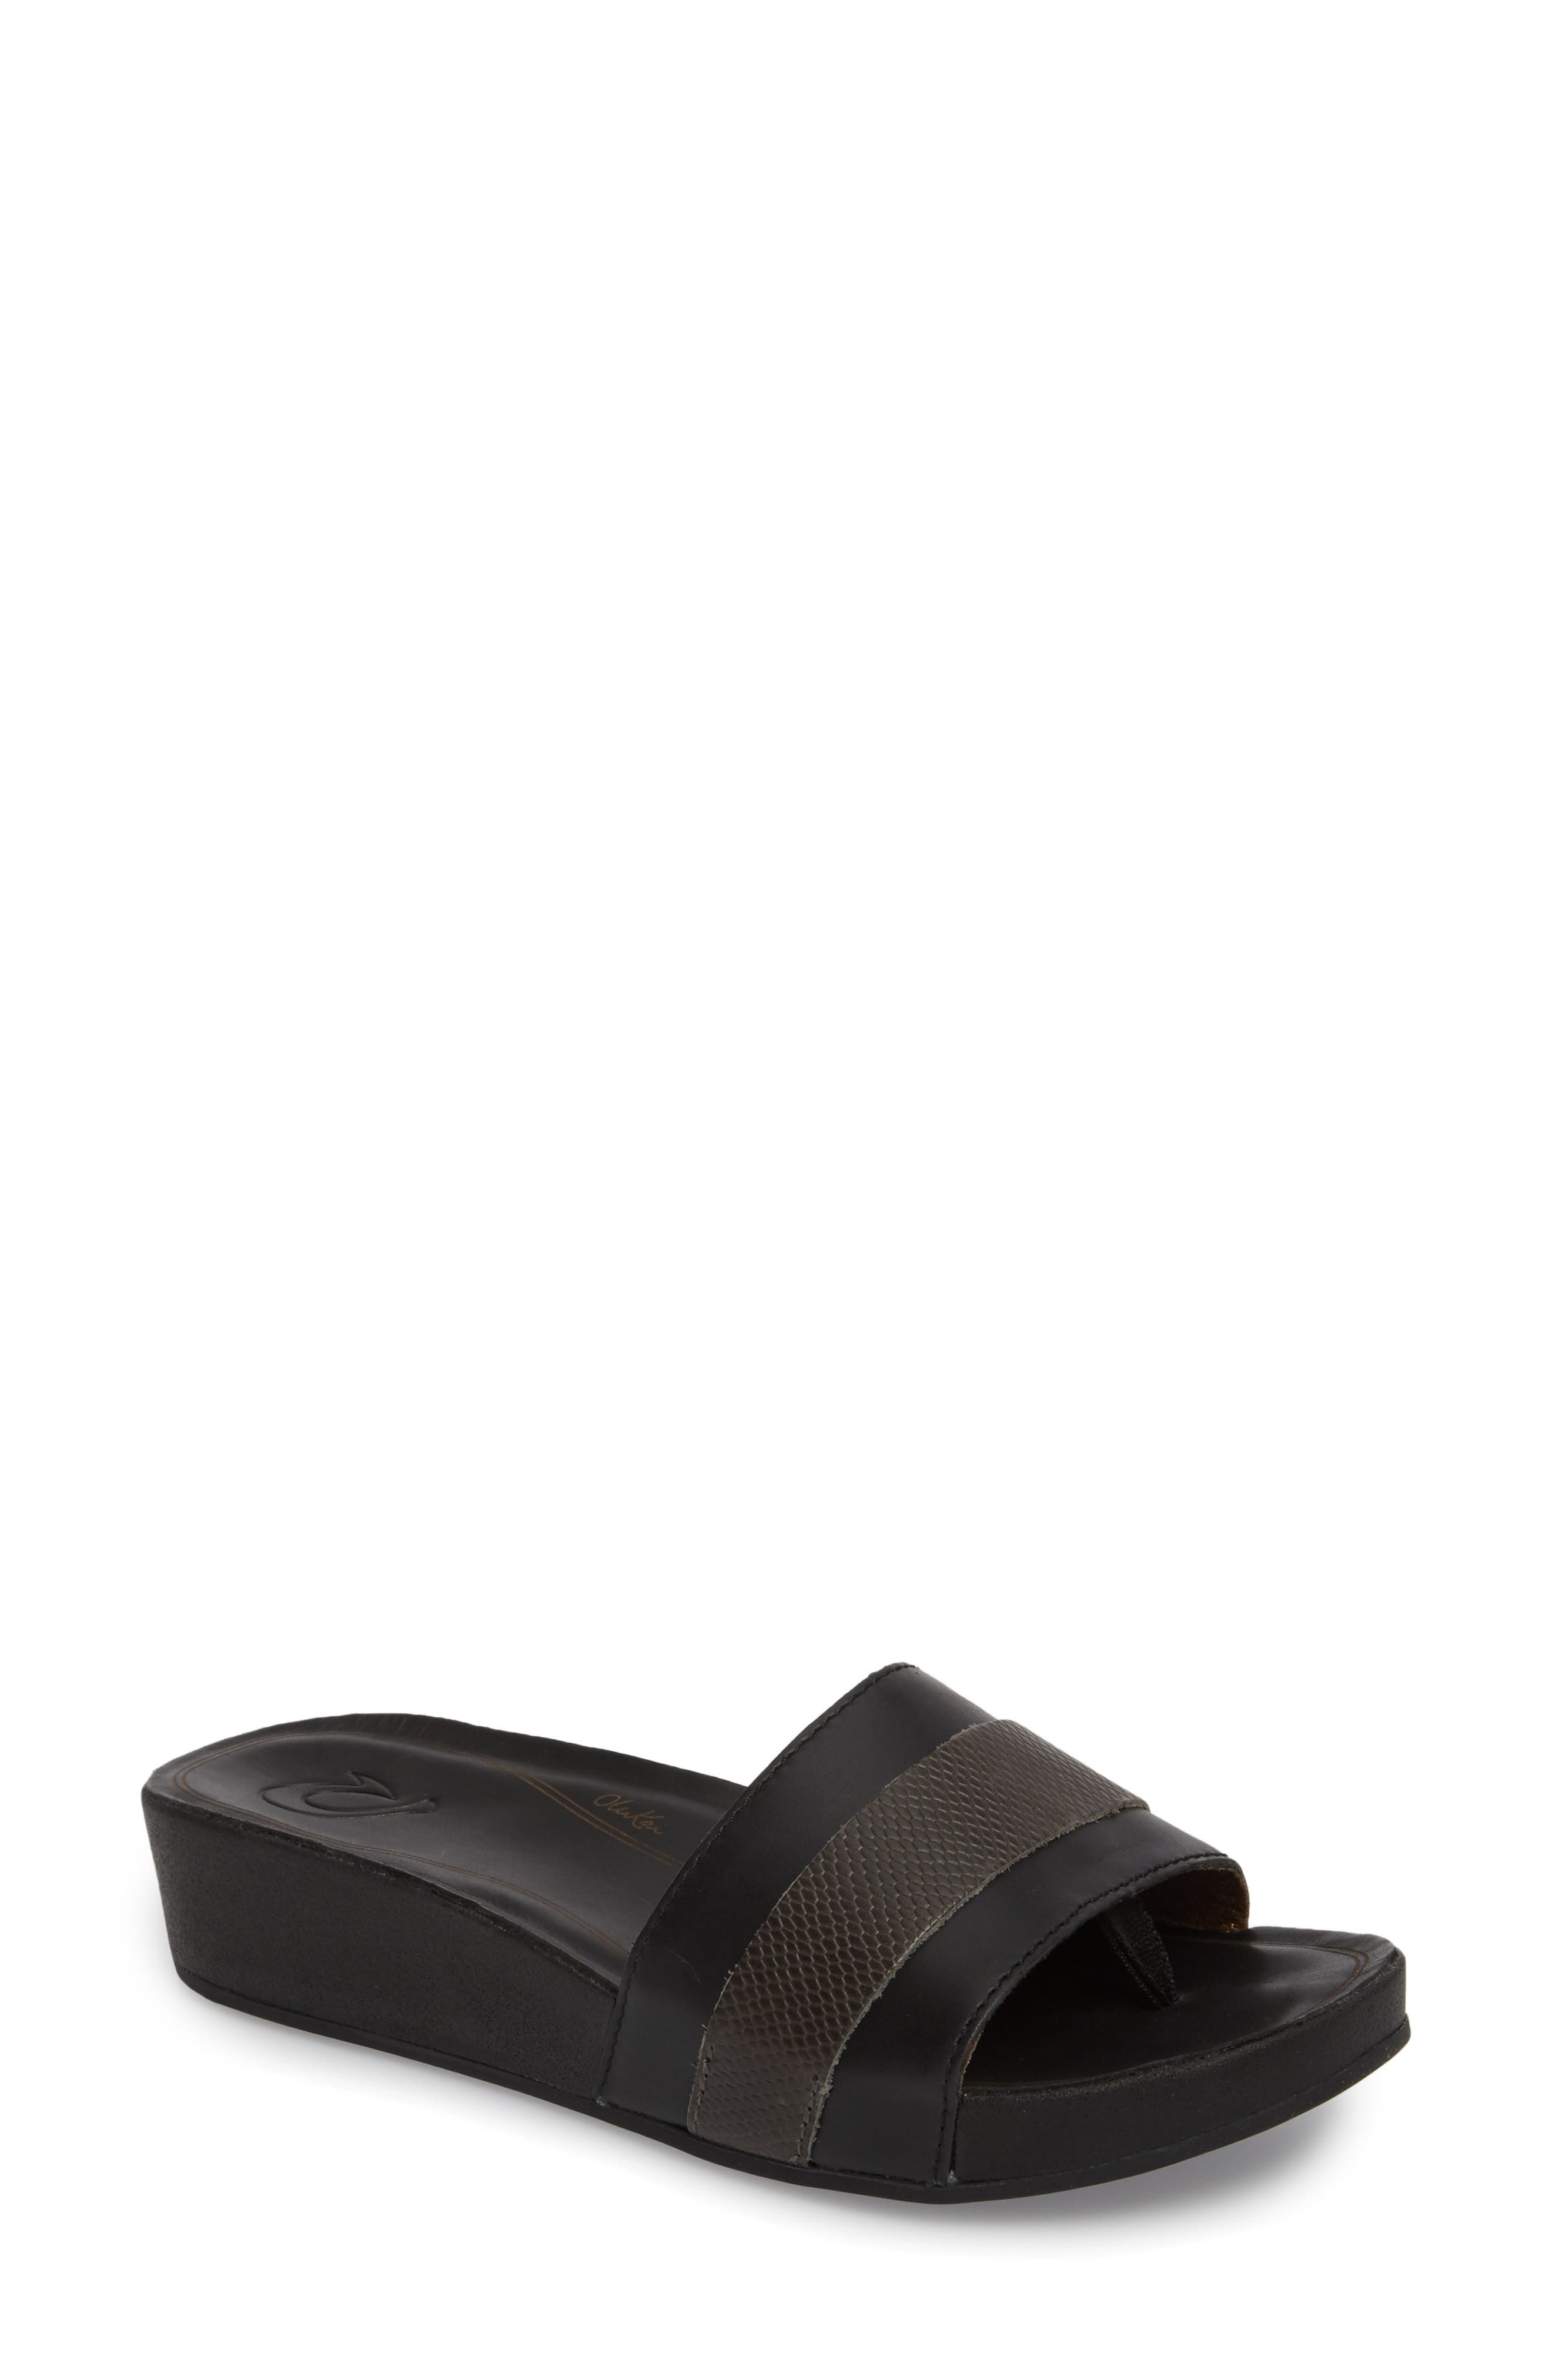 Ola Huna Wedge Sandal,                             Main thumbnail 1, color,                             020